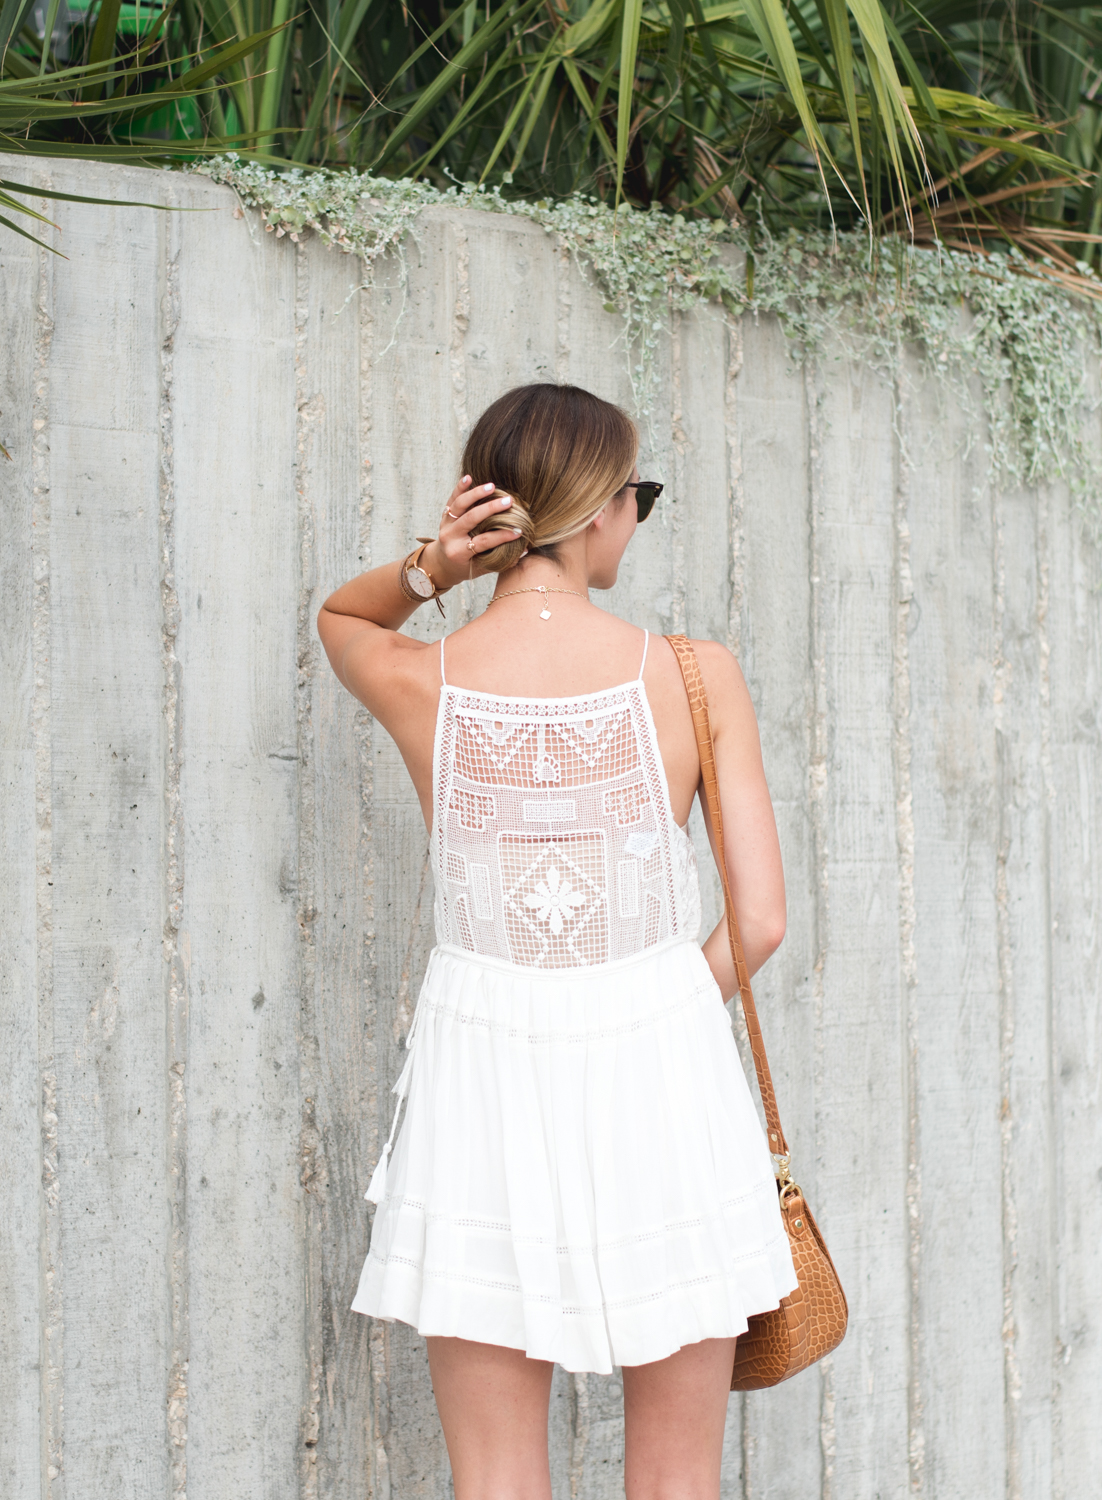 livvyland-blog-olivia-watson-austin-texas-fashion-blogger-free-people-flowy-white-high-neck-crochet-dress-tassel-south-lamar-kathryn-frazer-photography-boho-festival-outfit-6